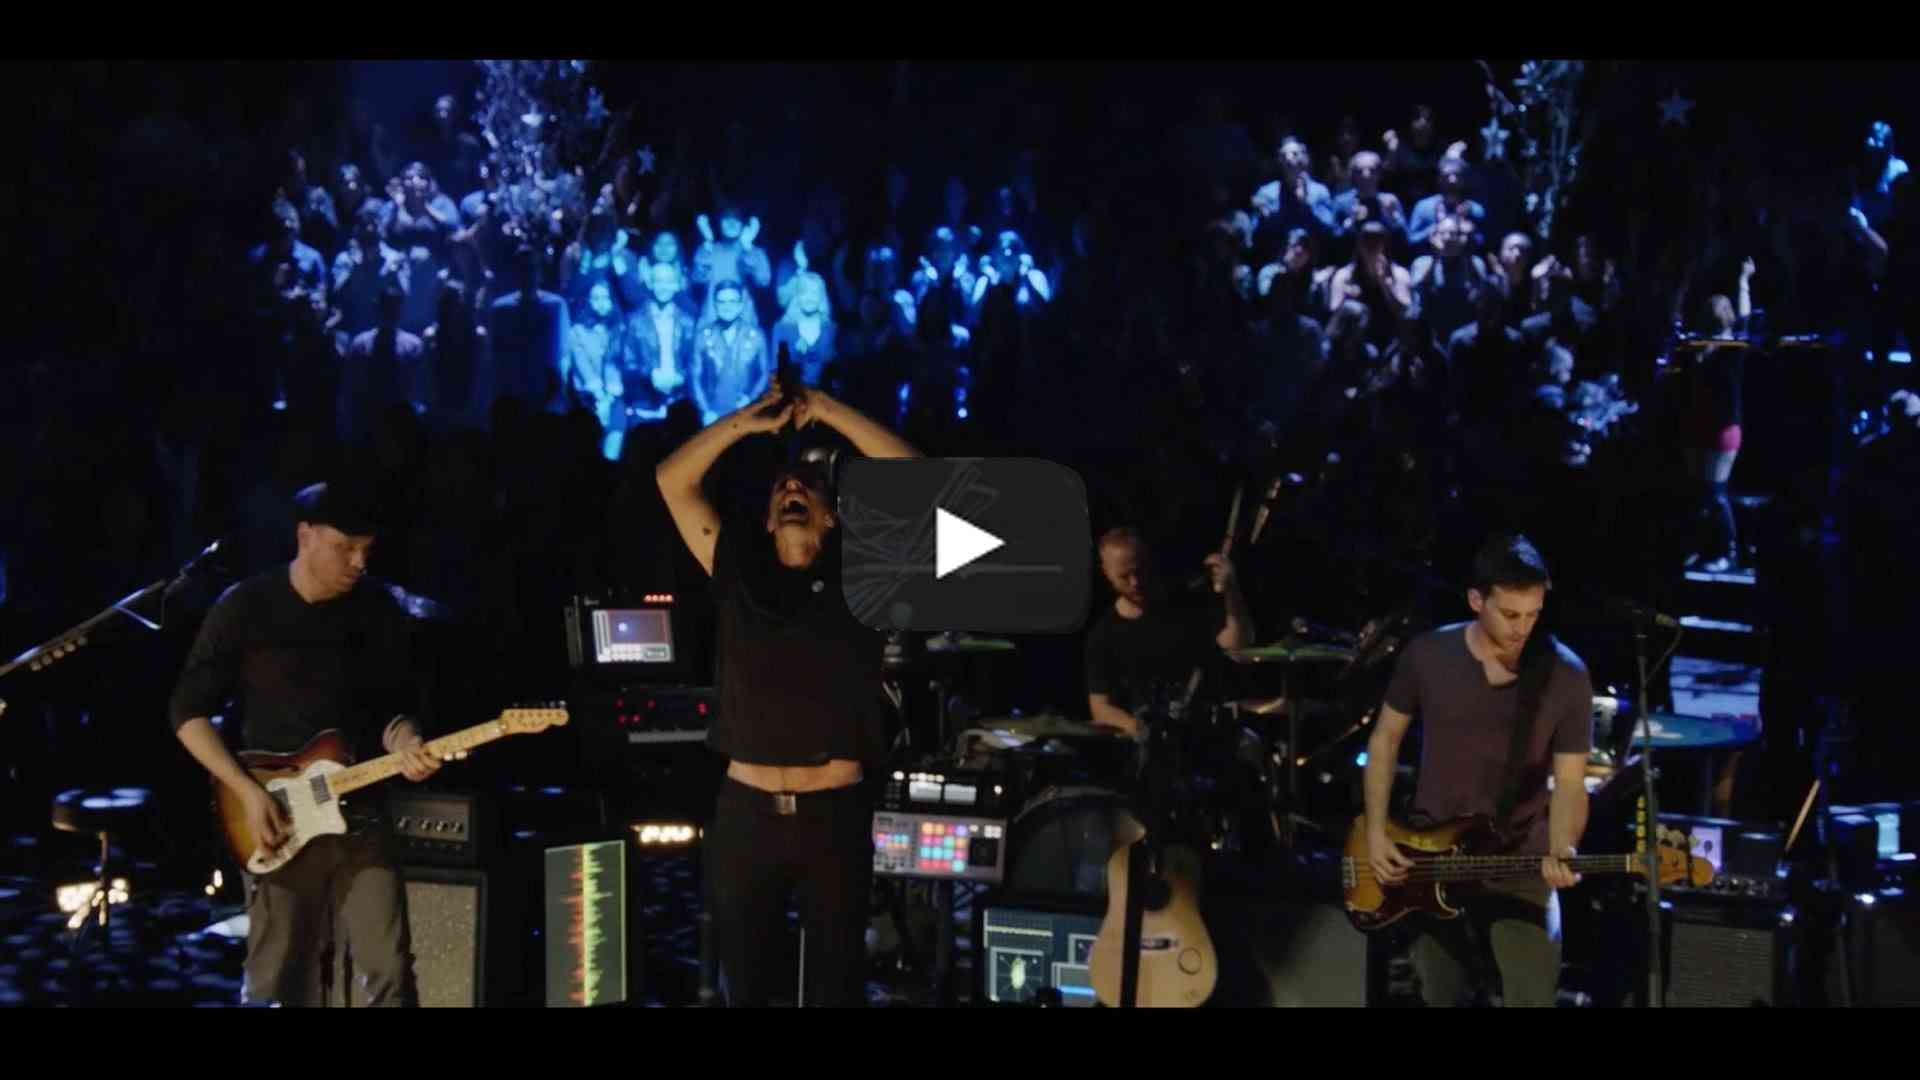 Coldplay - A Sky Full Of Stars (from Ghost Stories Live 2014) - YouTube